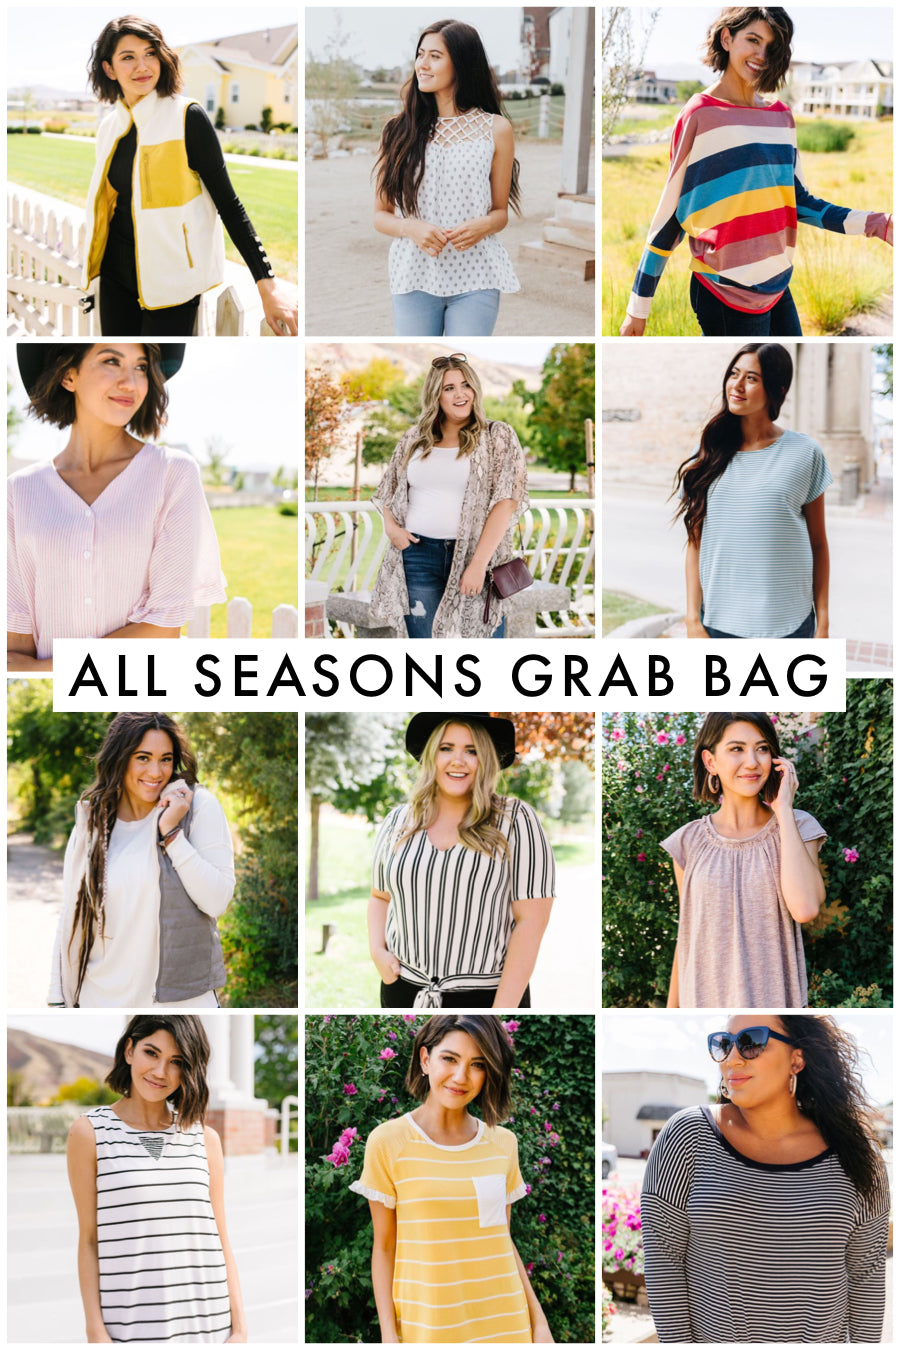 All Seasons 3 Item Grab Bag